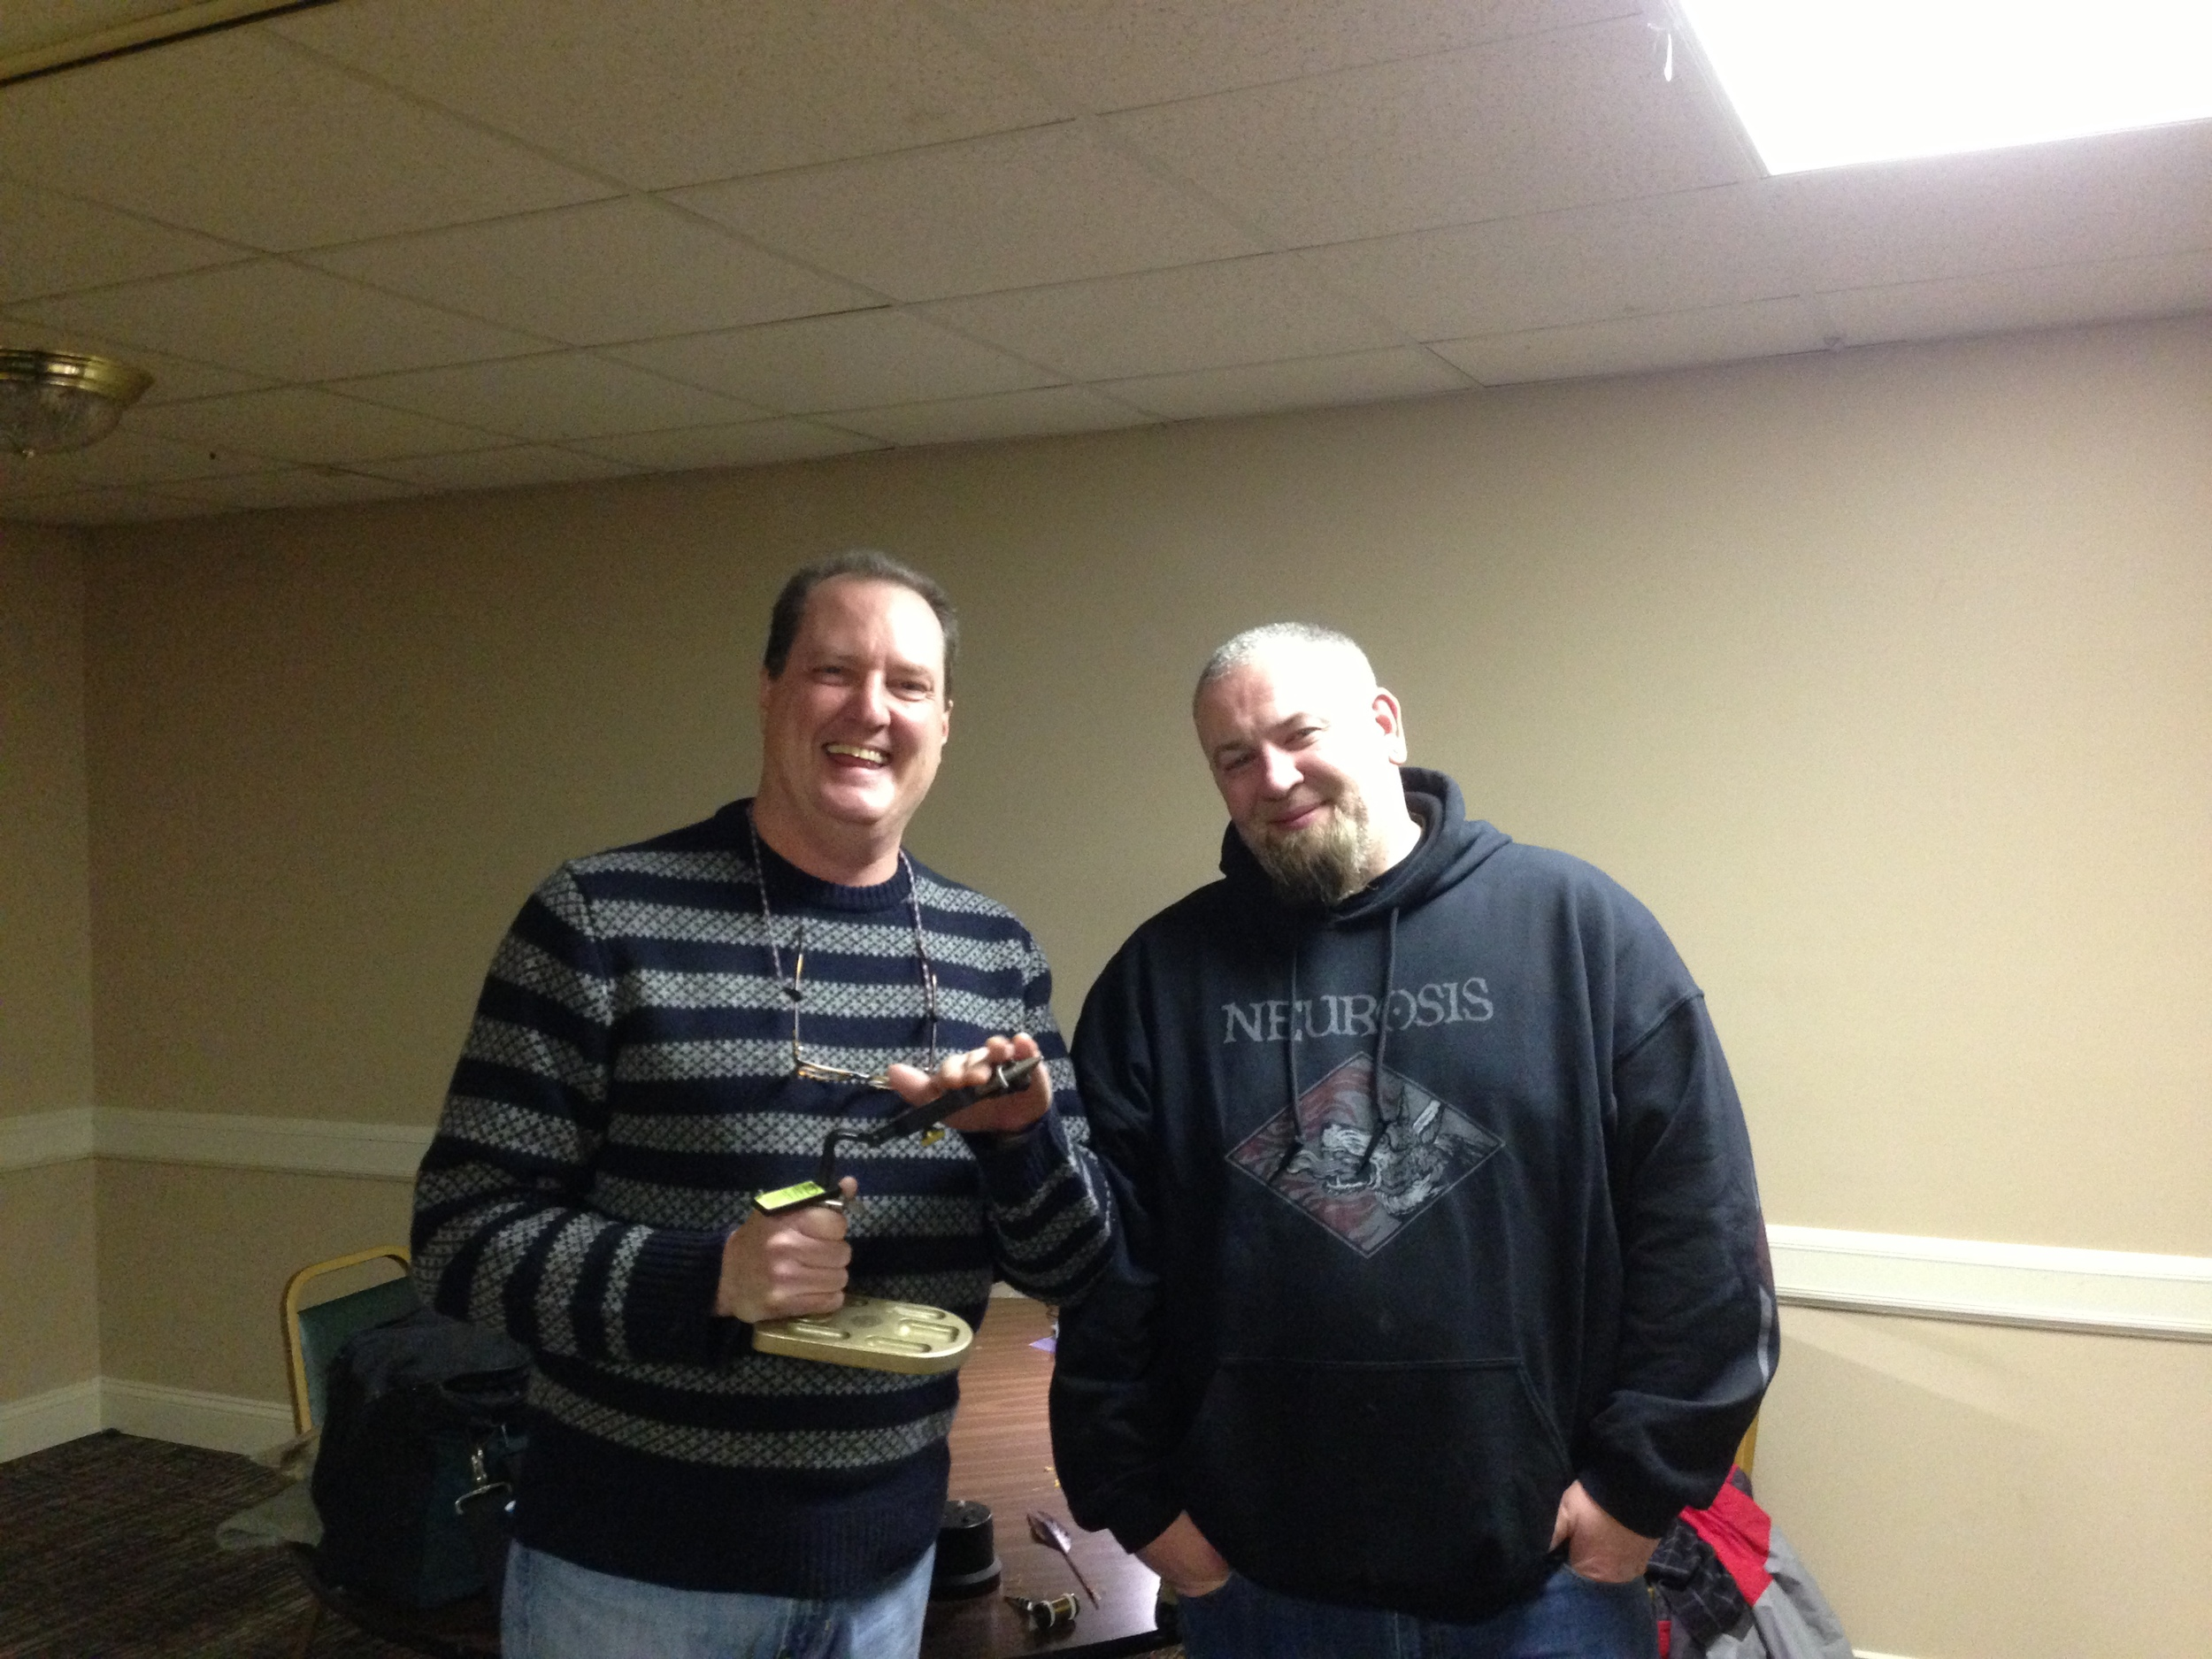 Matt Grobert and Mike McCauliffe at the January fly tying meeting. Rarely is such great talent assembled for a picture.